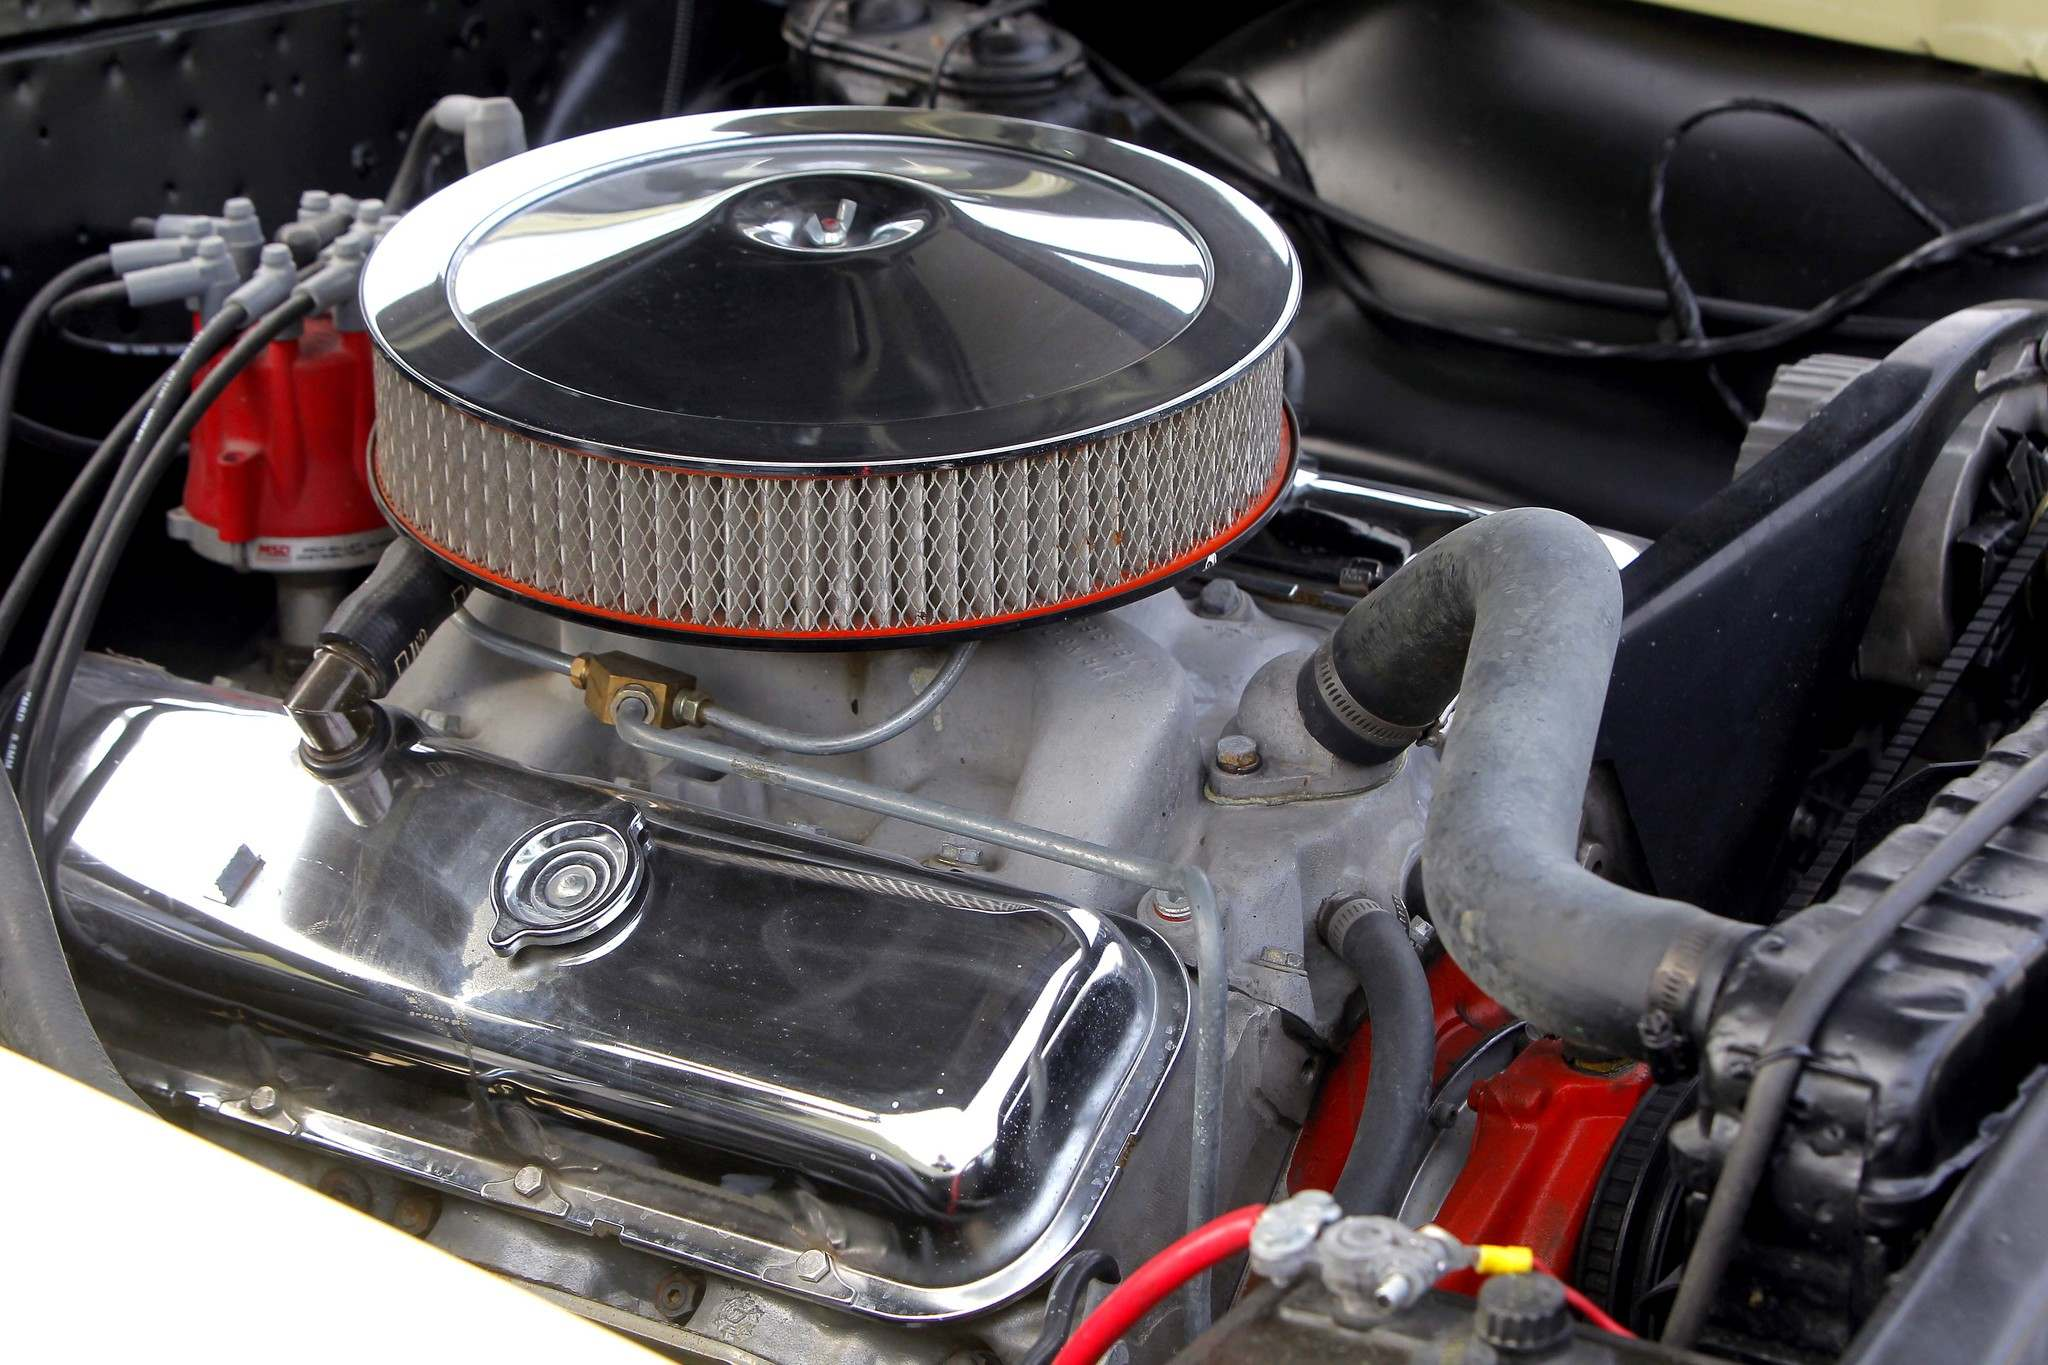 The '66 El Camino packs a real punch under its hood.